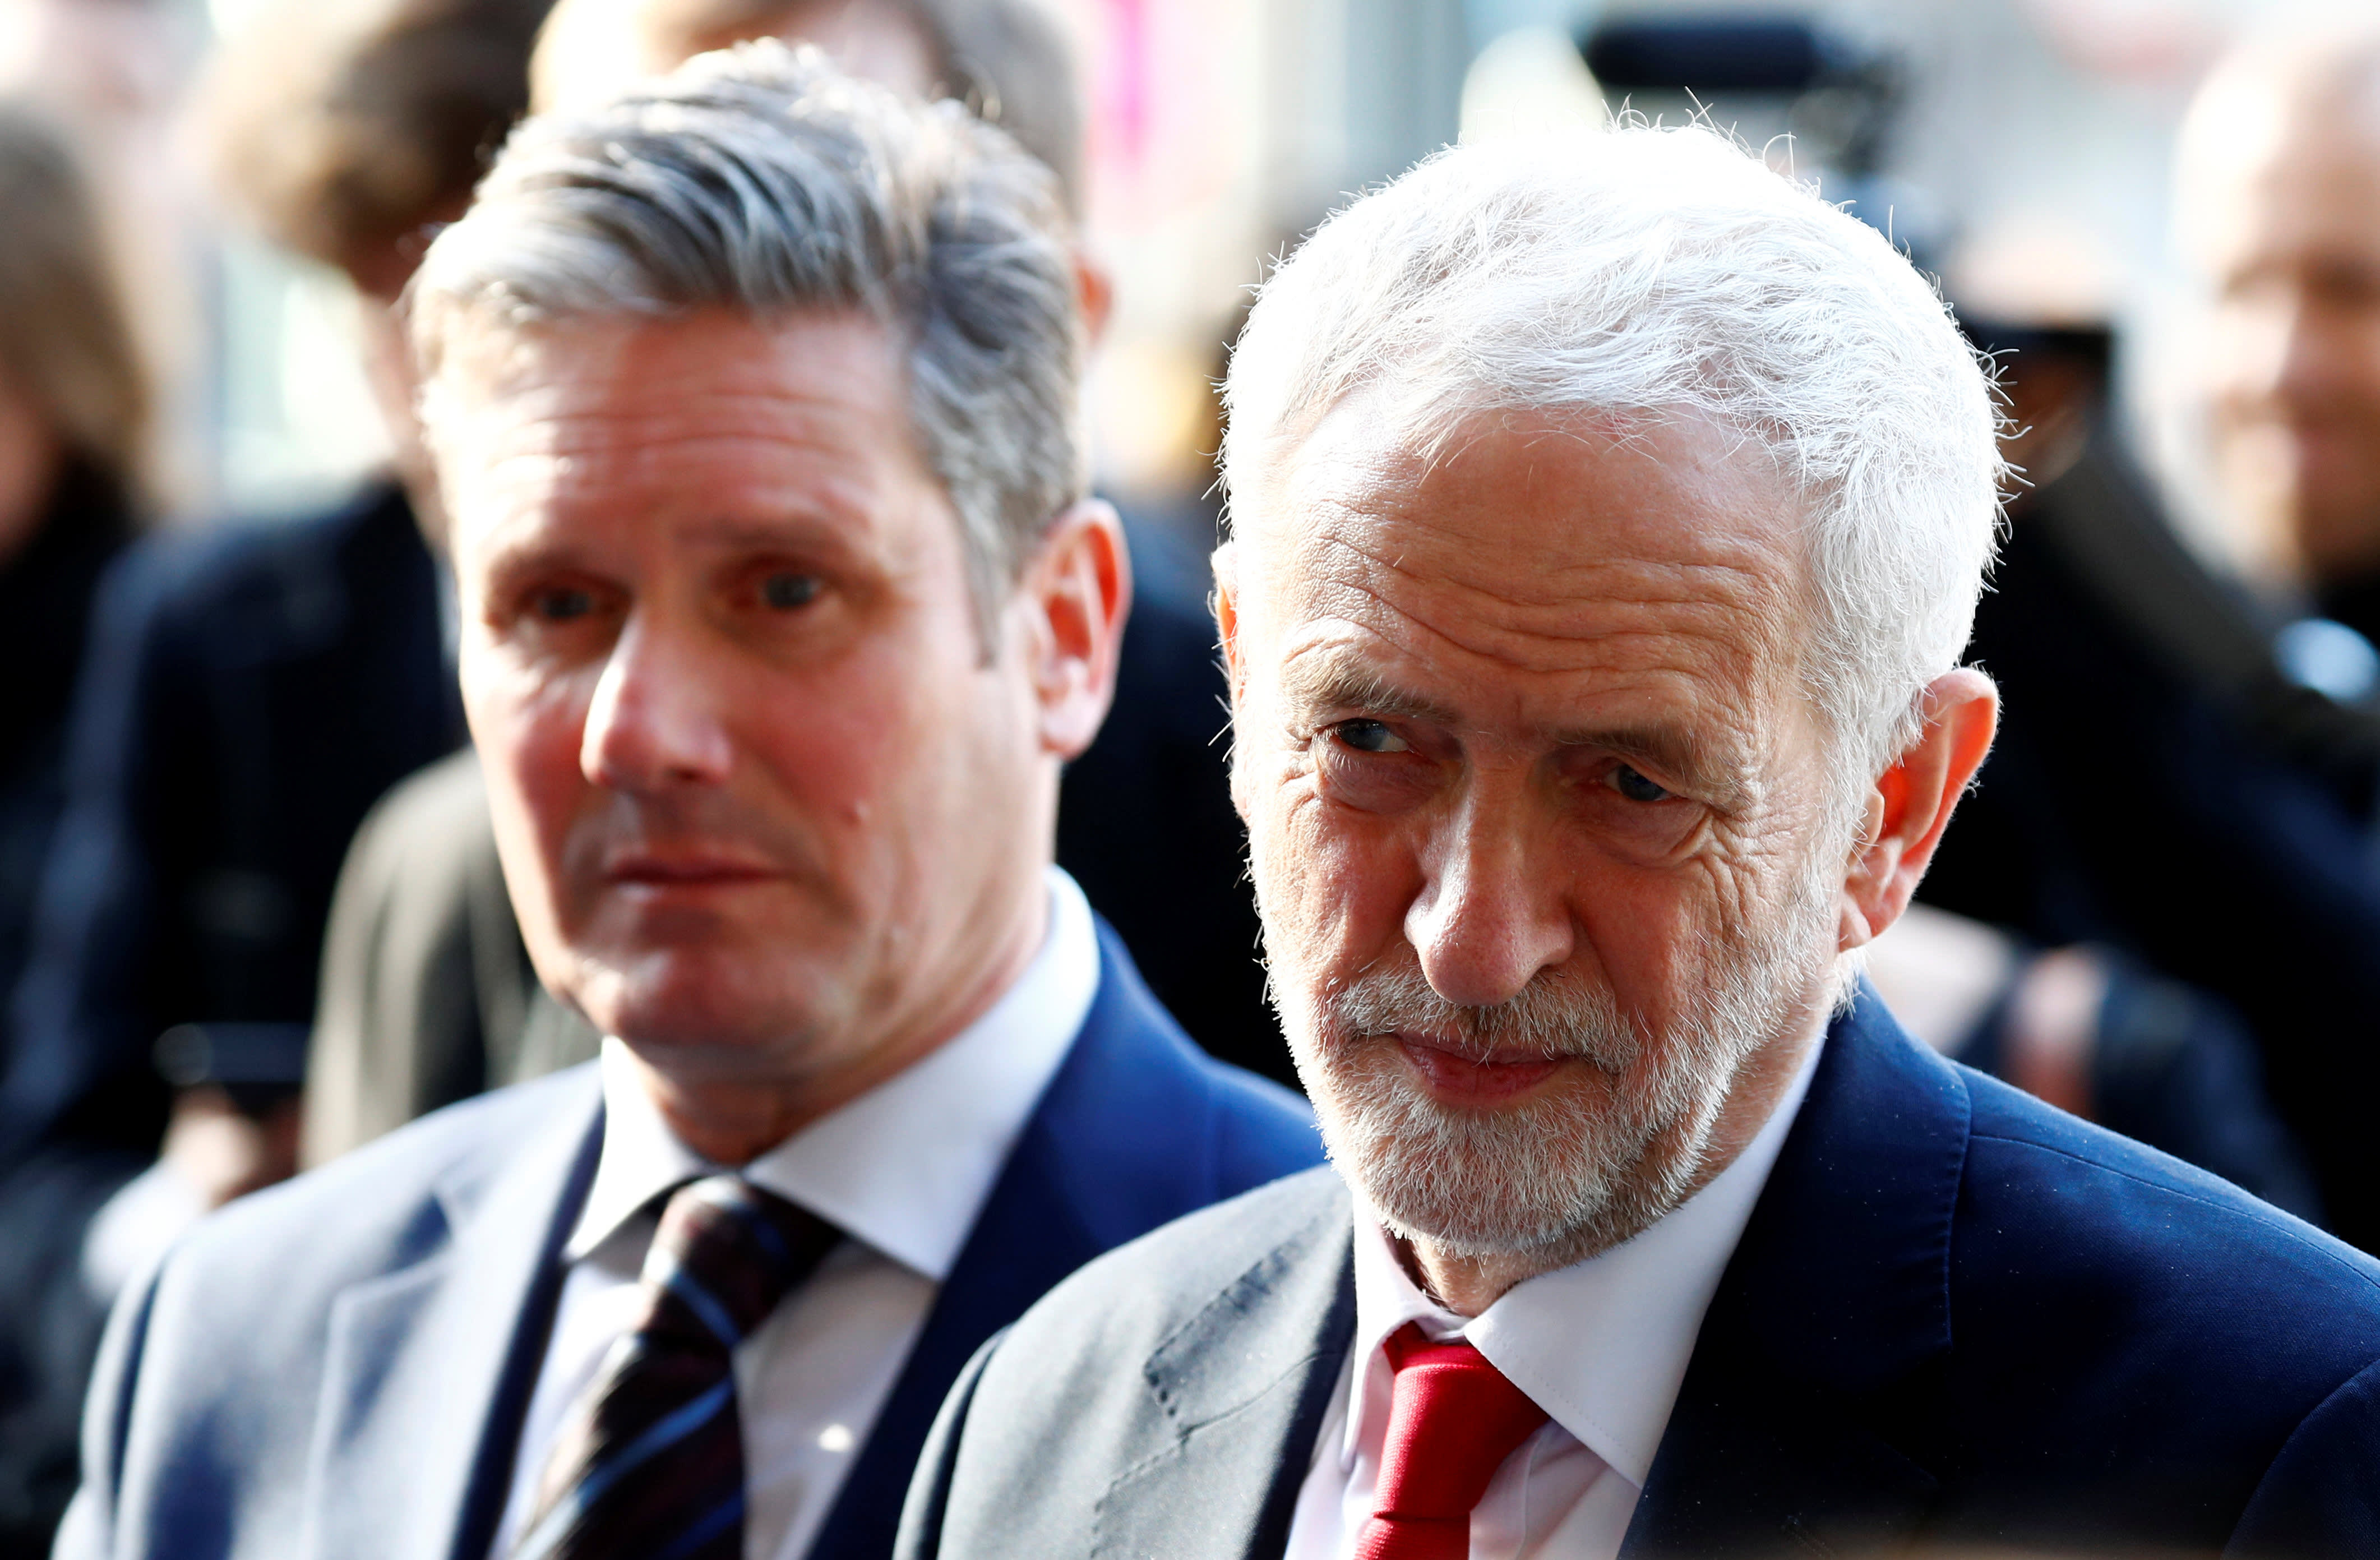 UK opposition leader Corbyn writes to Queen over parliament suspension